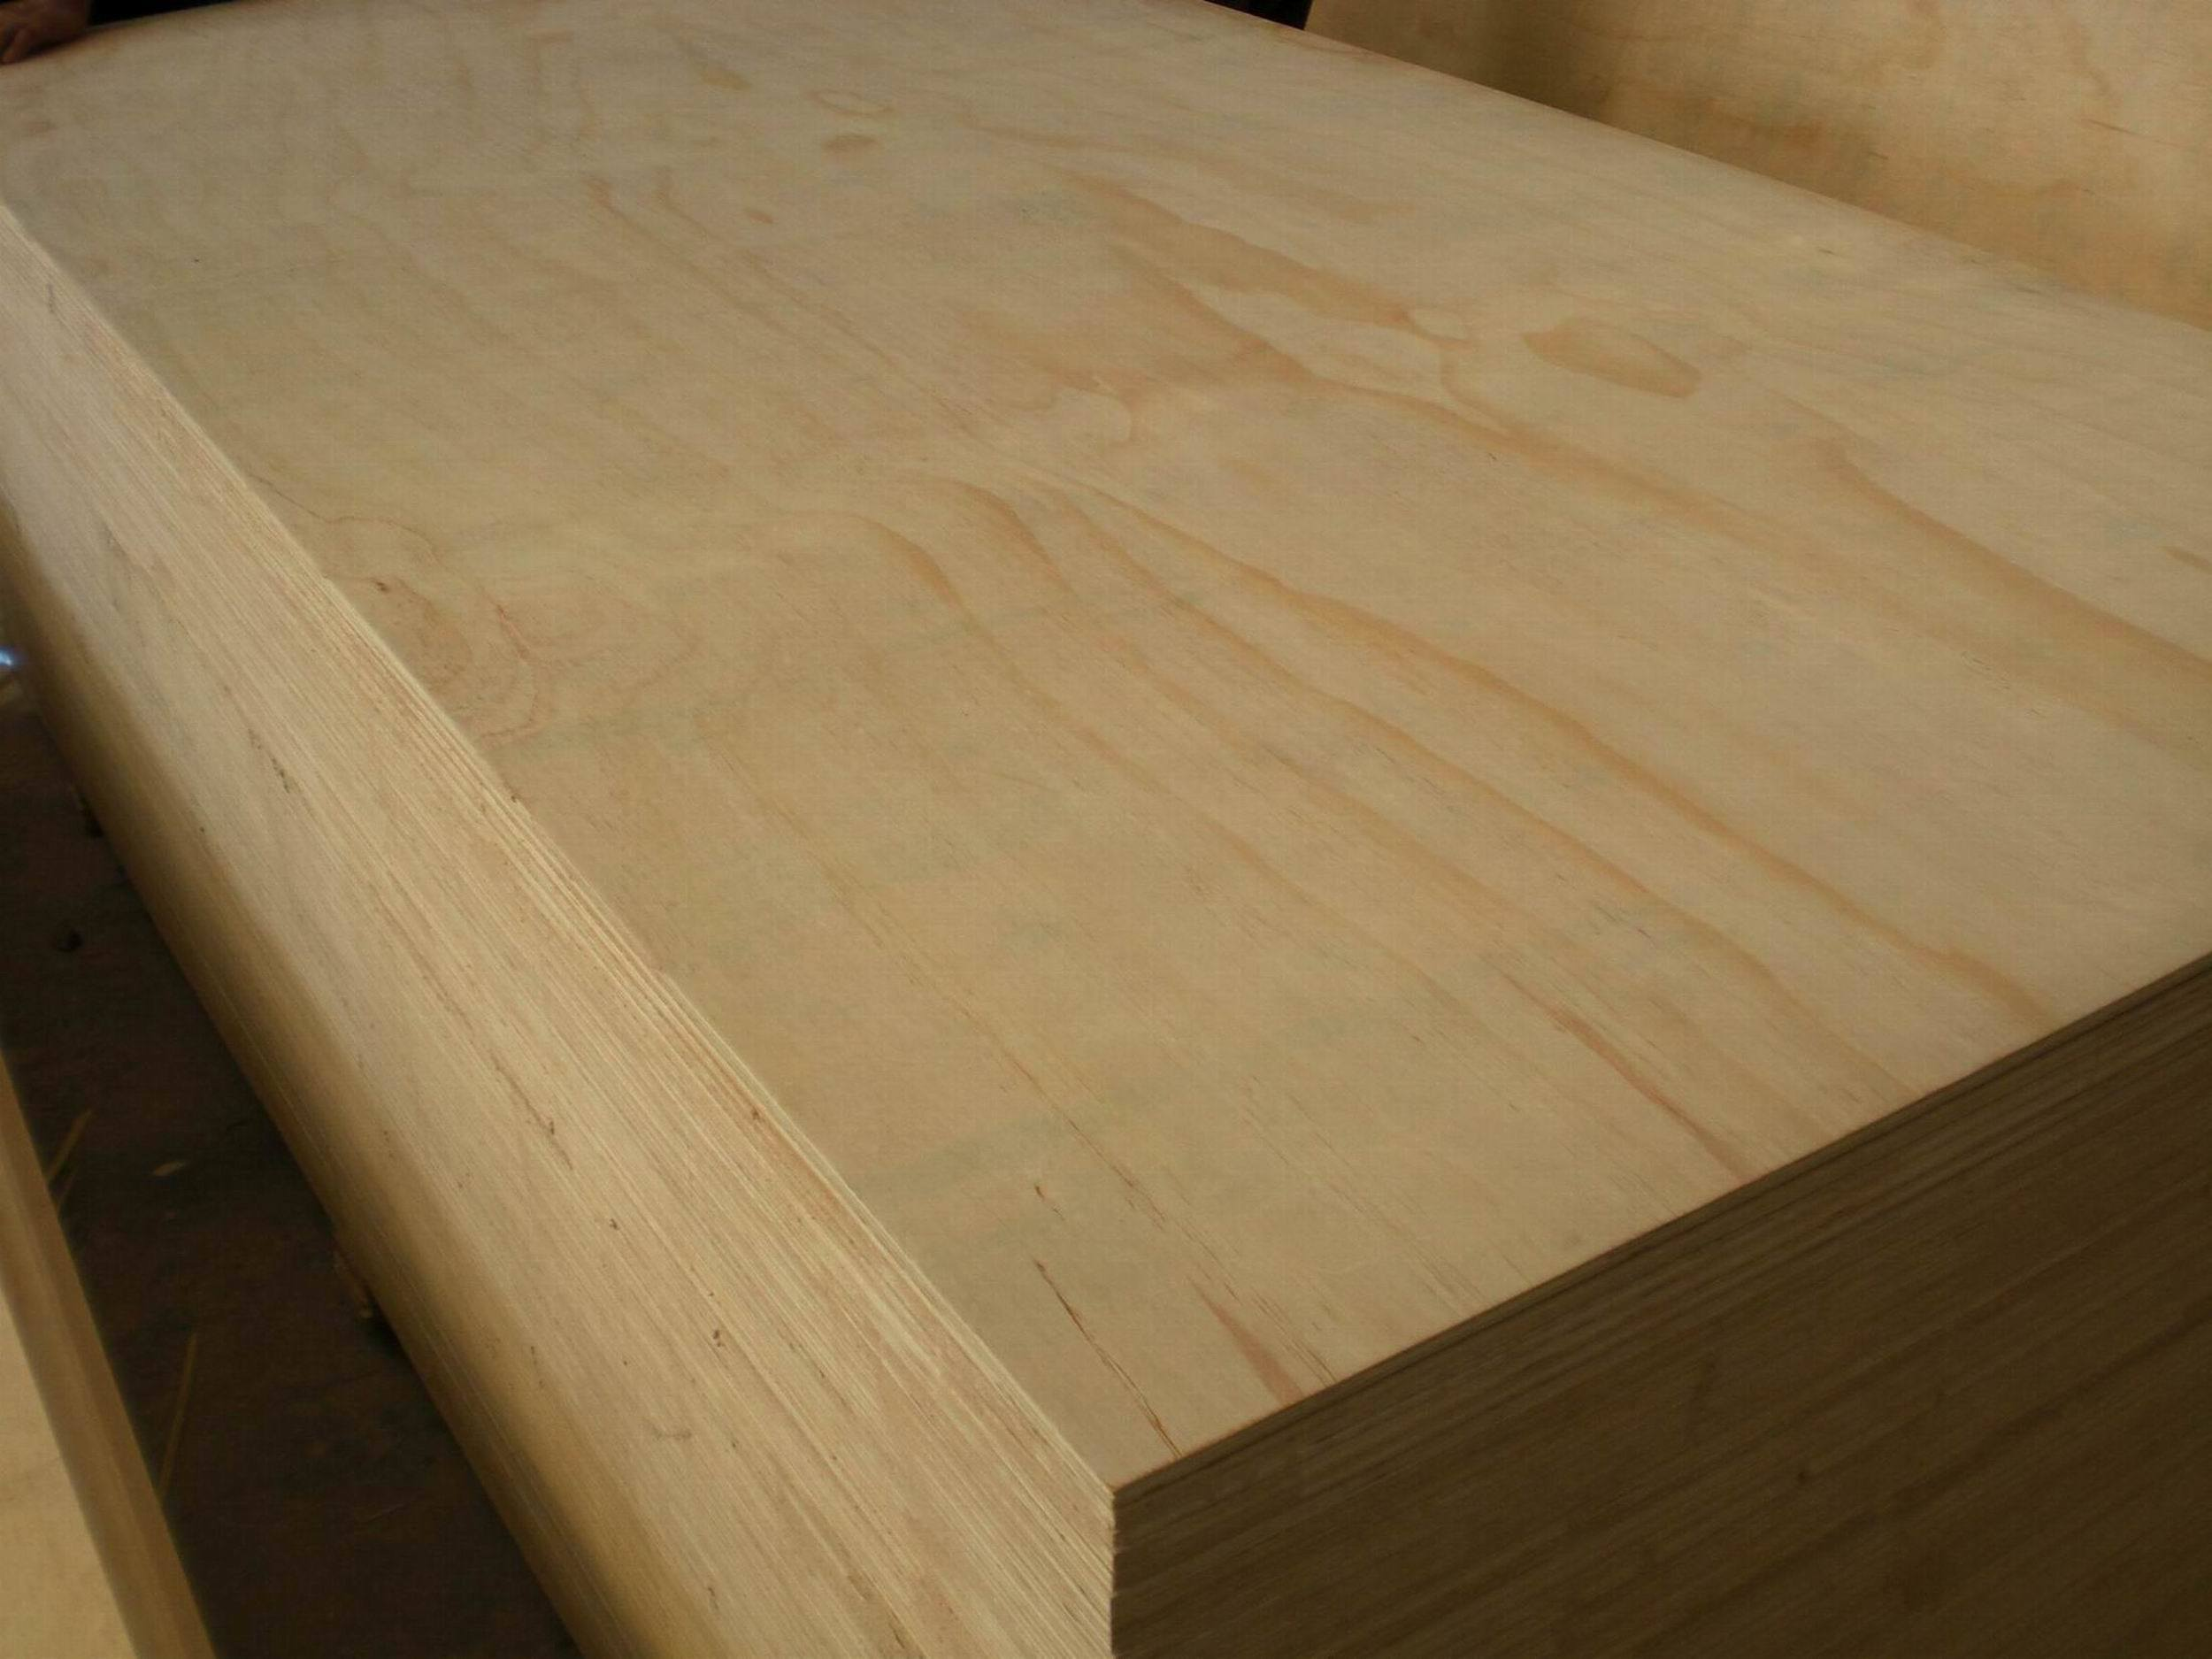 Decorative Commercial Plywood for Furniture E1 Glue